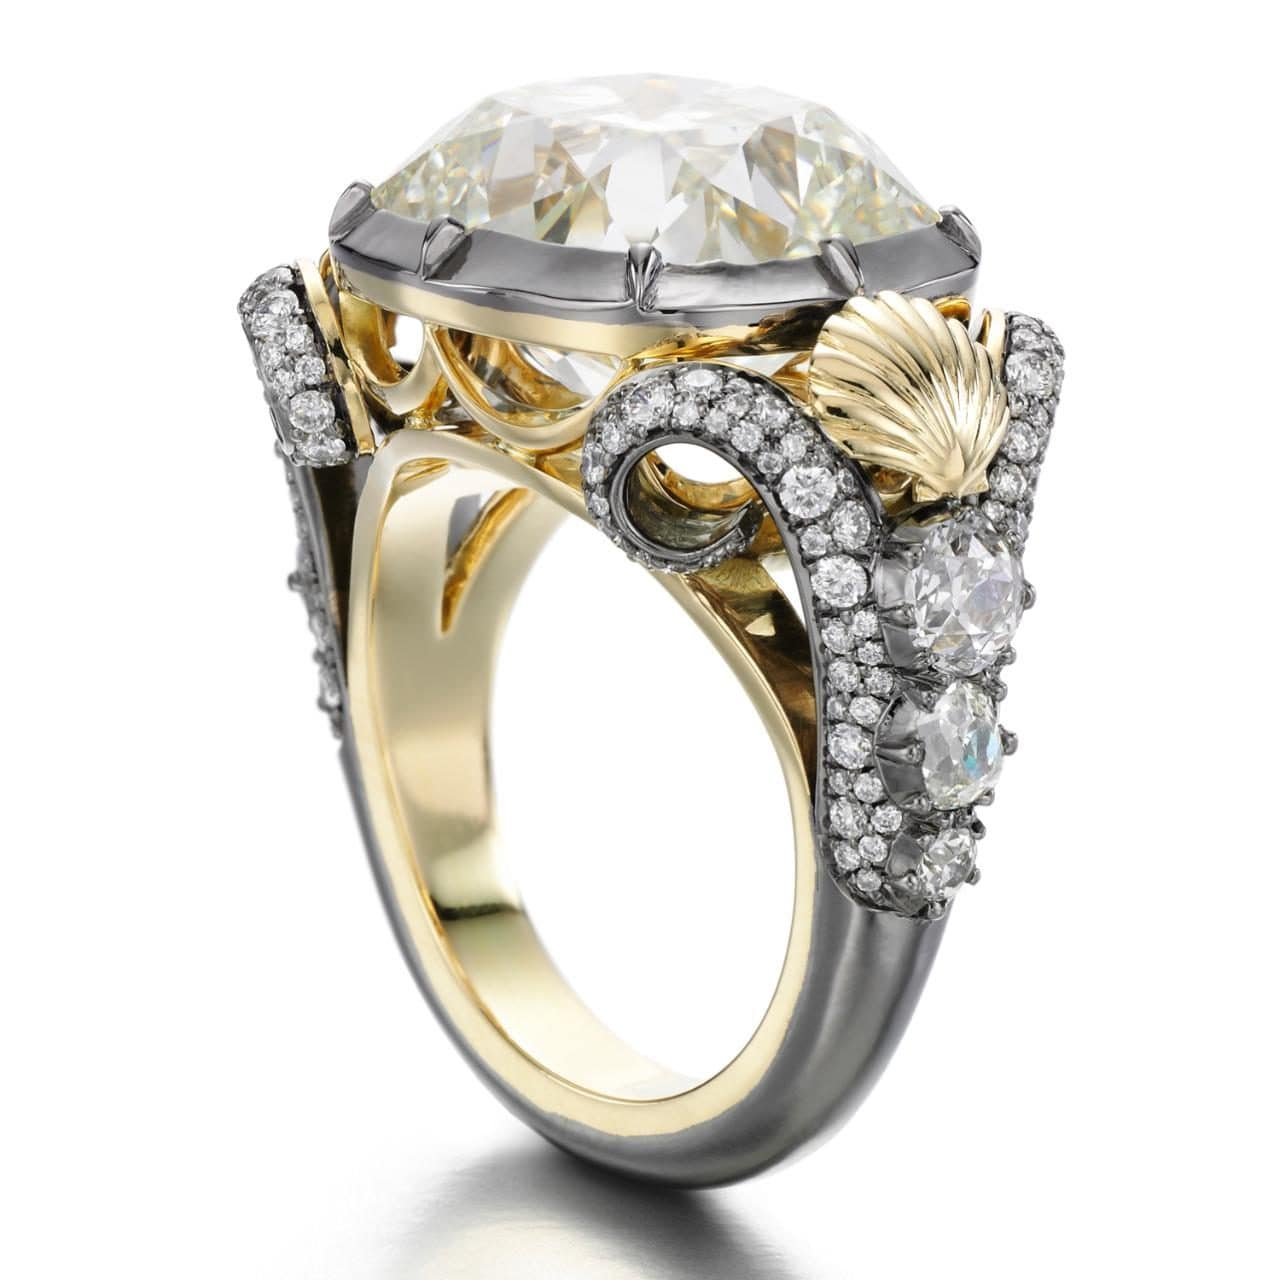 Jessica Mccormack Launches Couture Engagement Rings